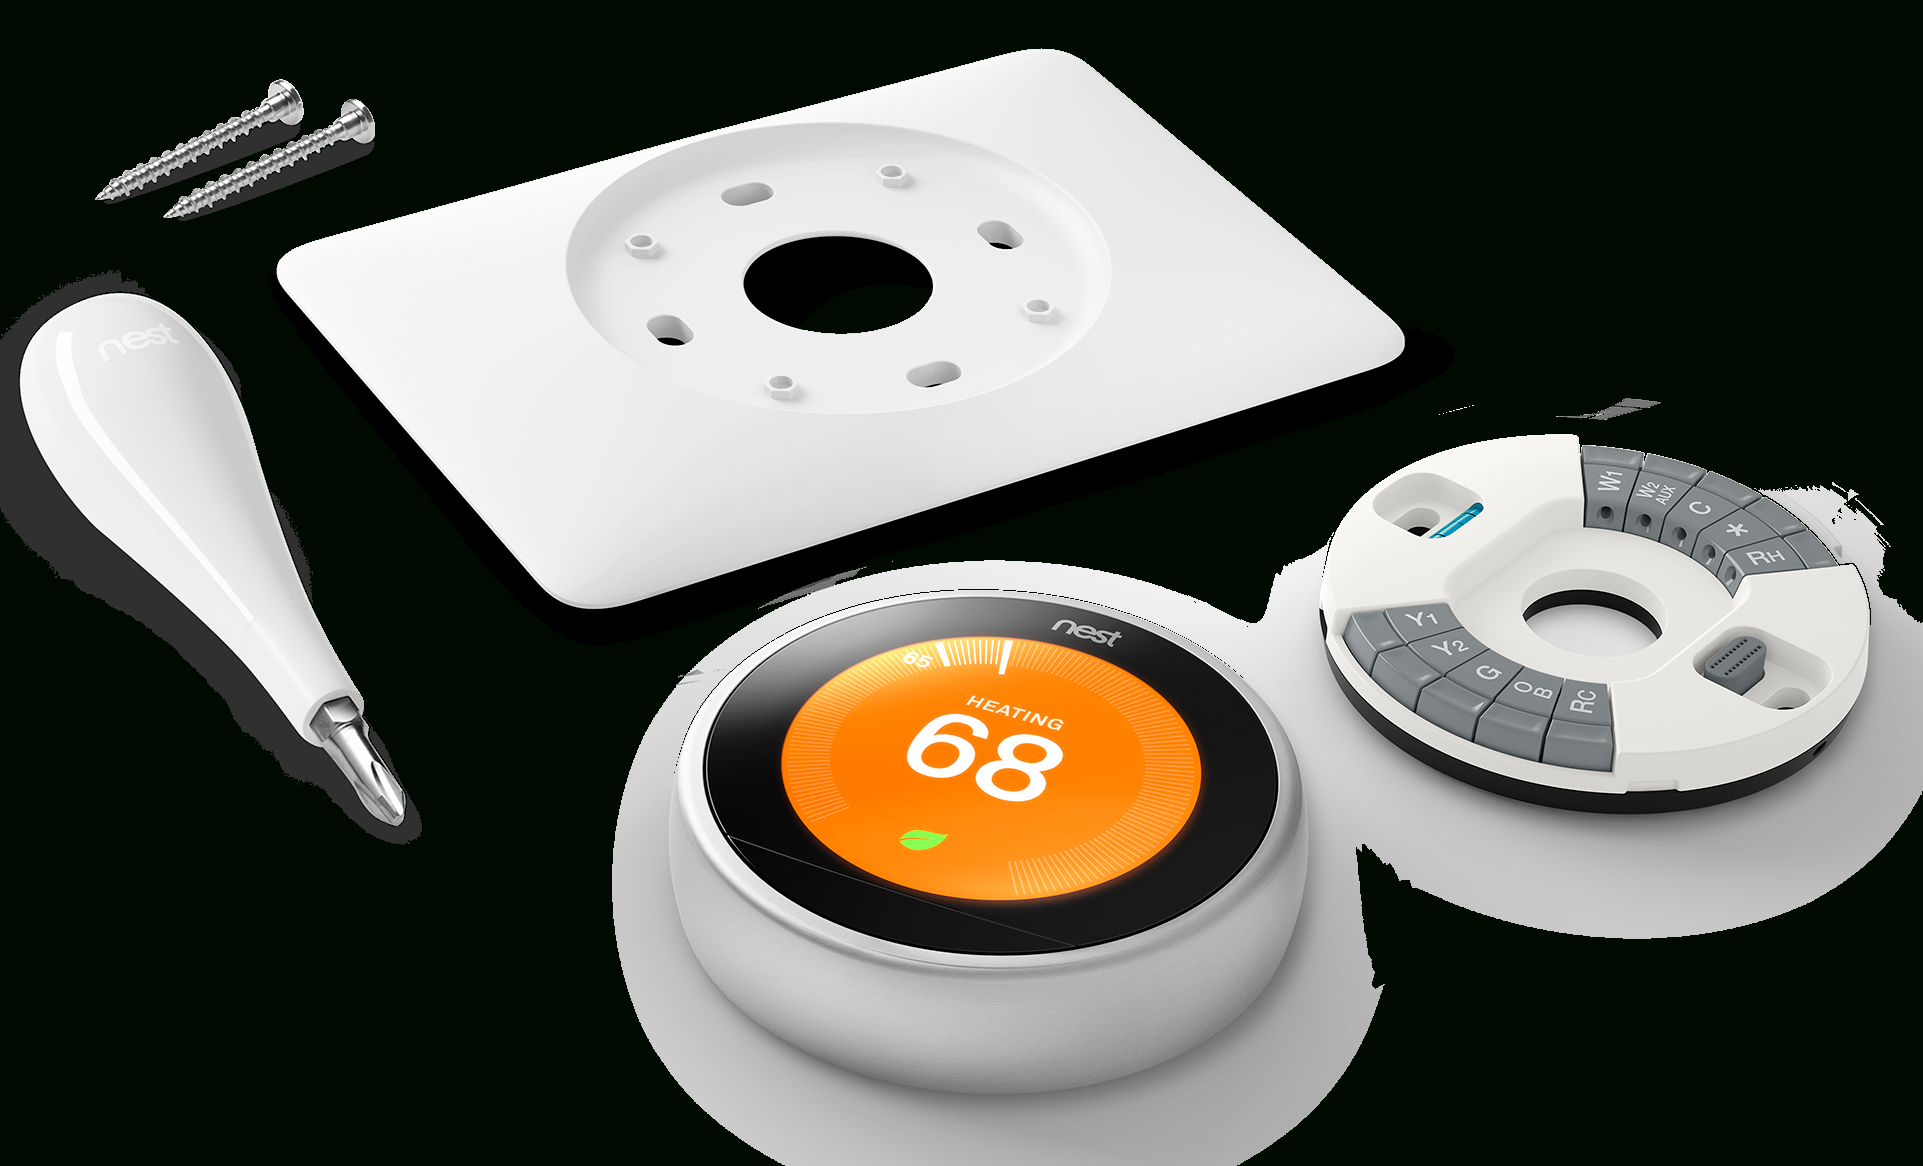 How To Install Your Nest Thermostat - 3Rd Gen Nest Wiring Diagram Pro